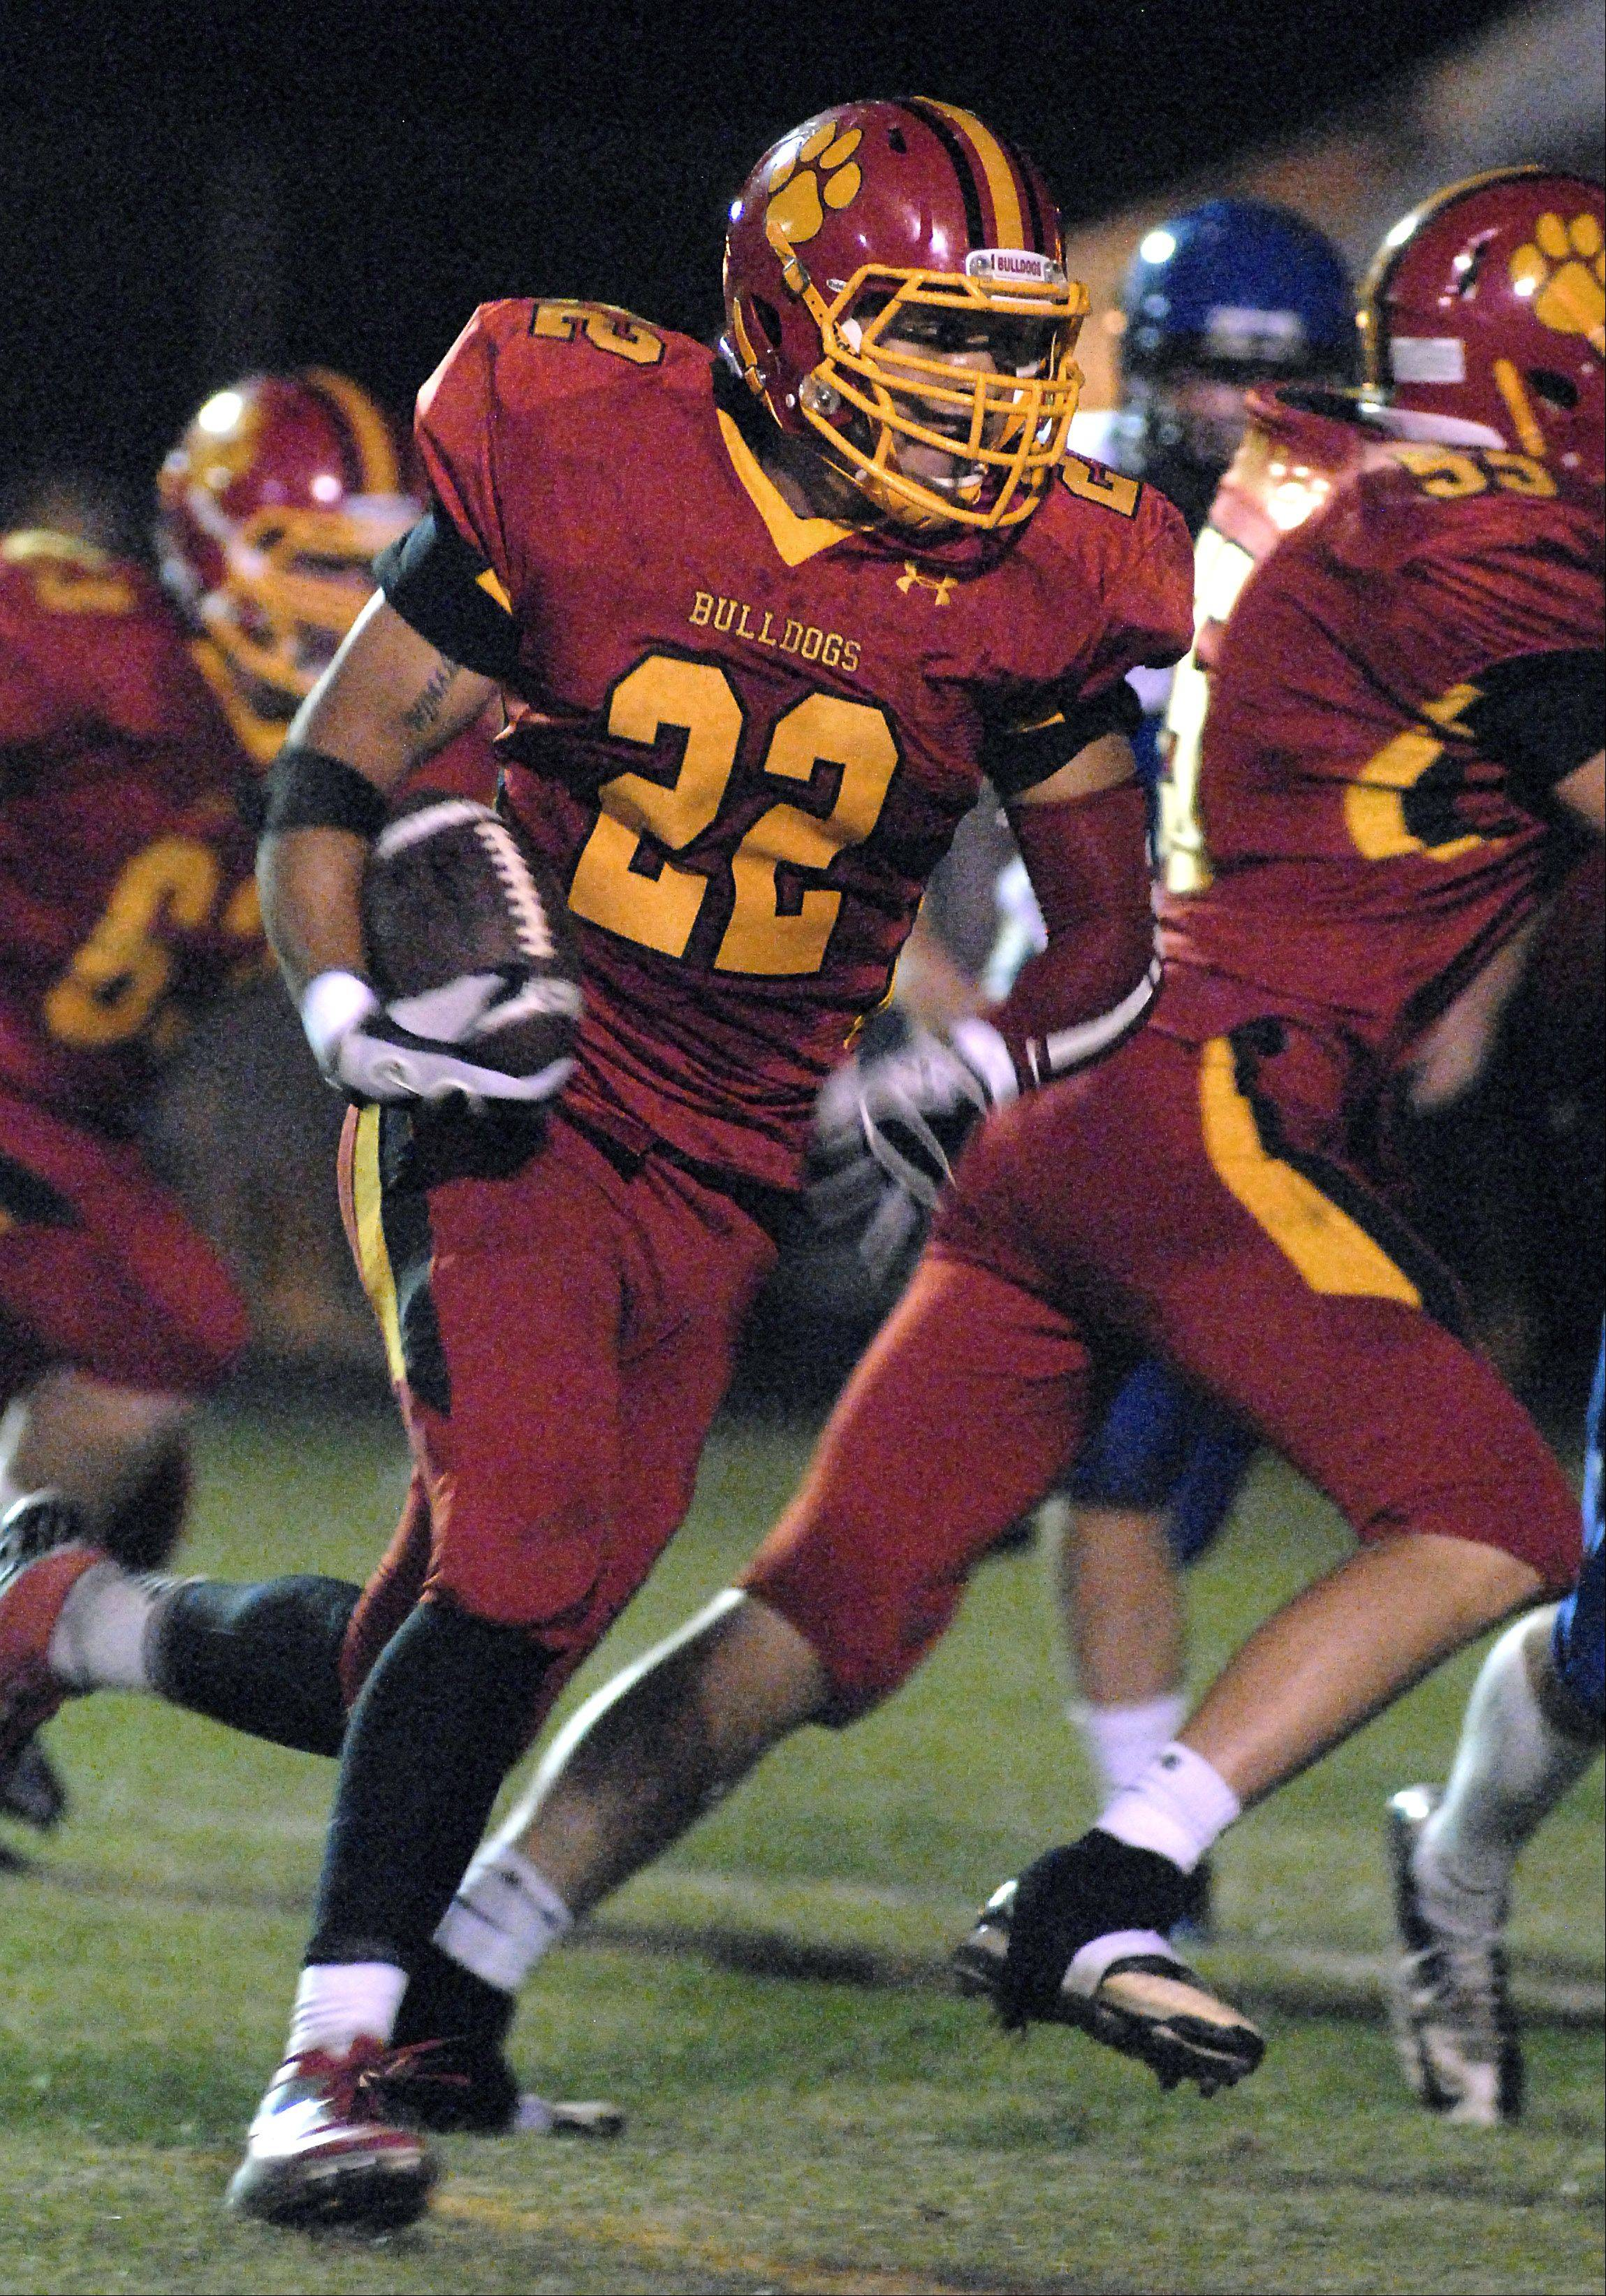 Batavia's Anthony Thielk makes a run for the end zone in the second quarter.